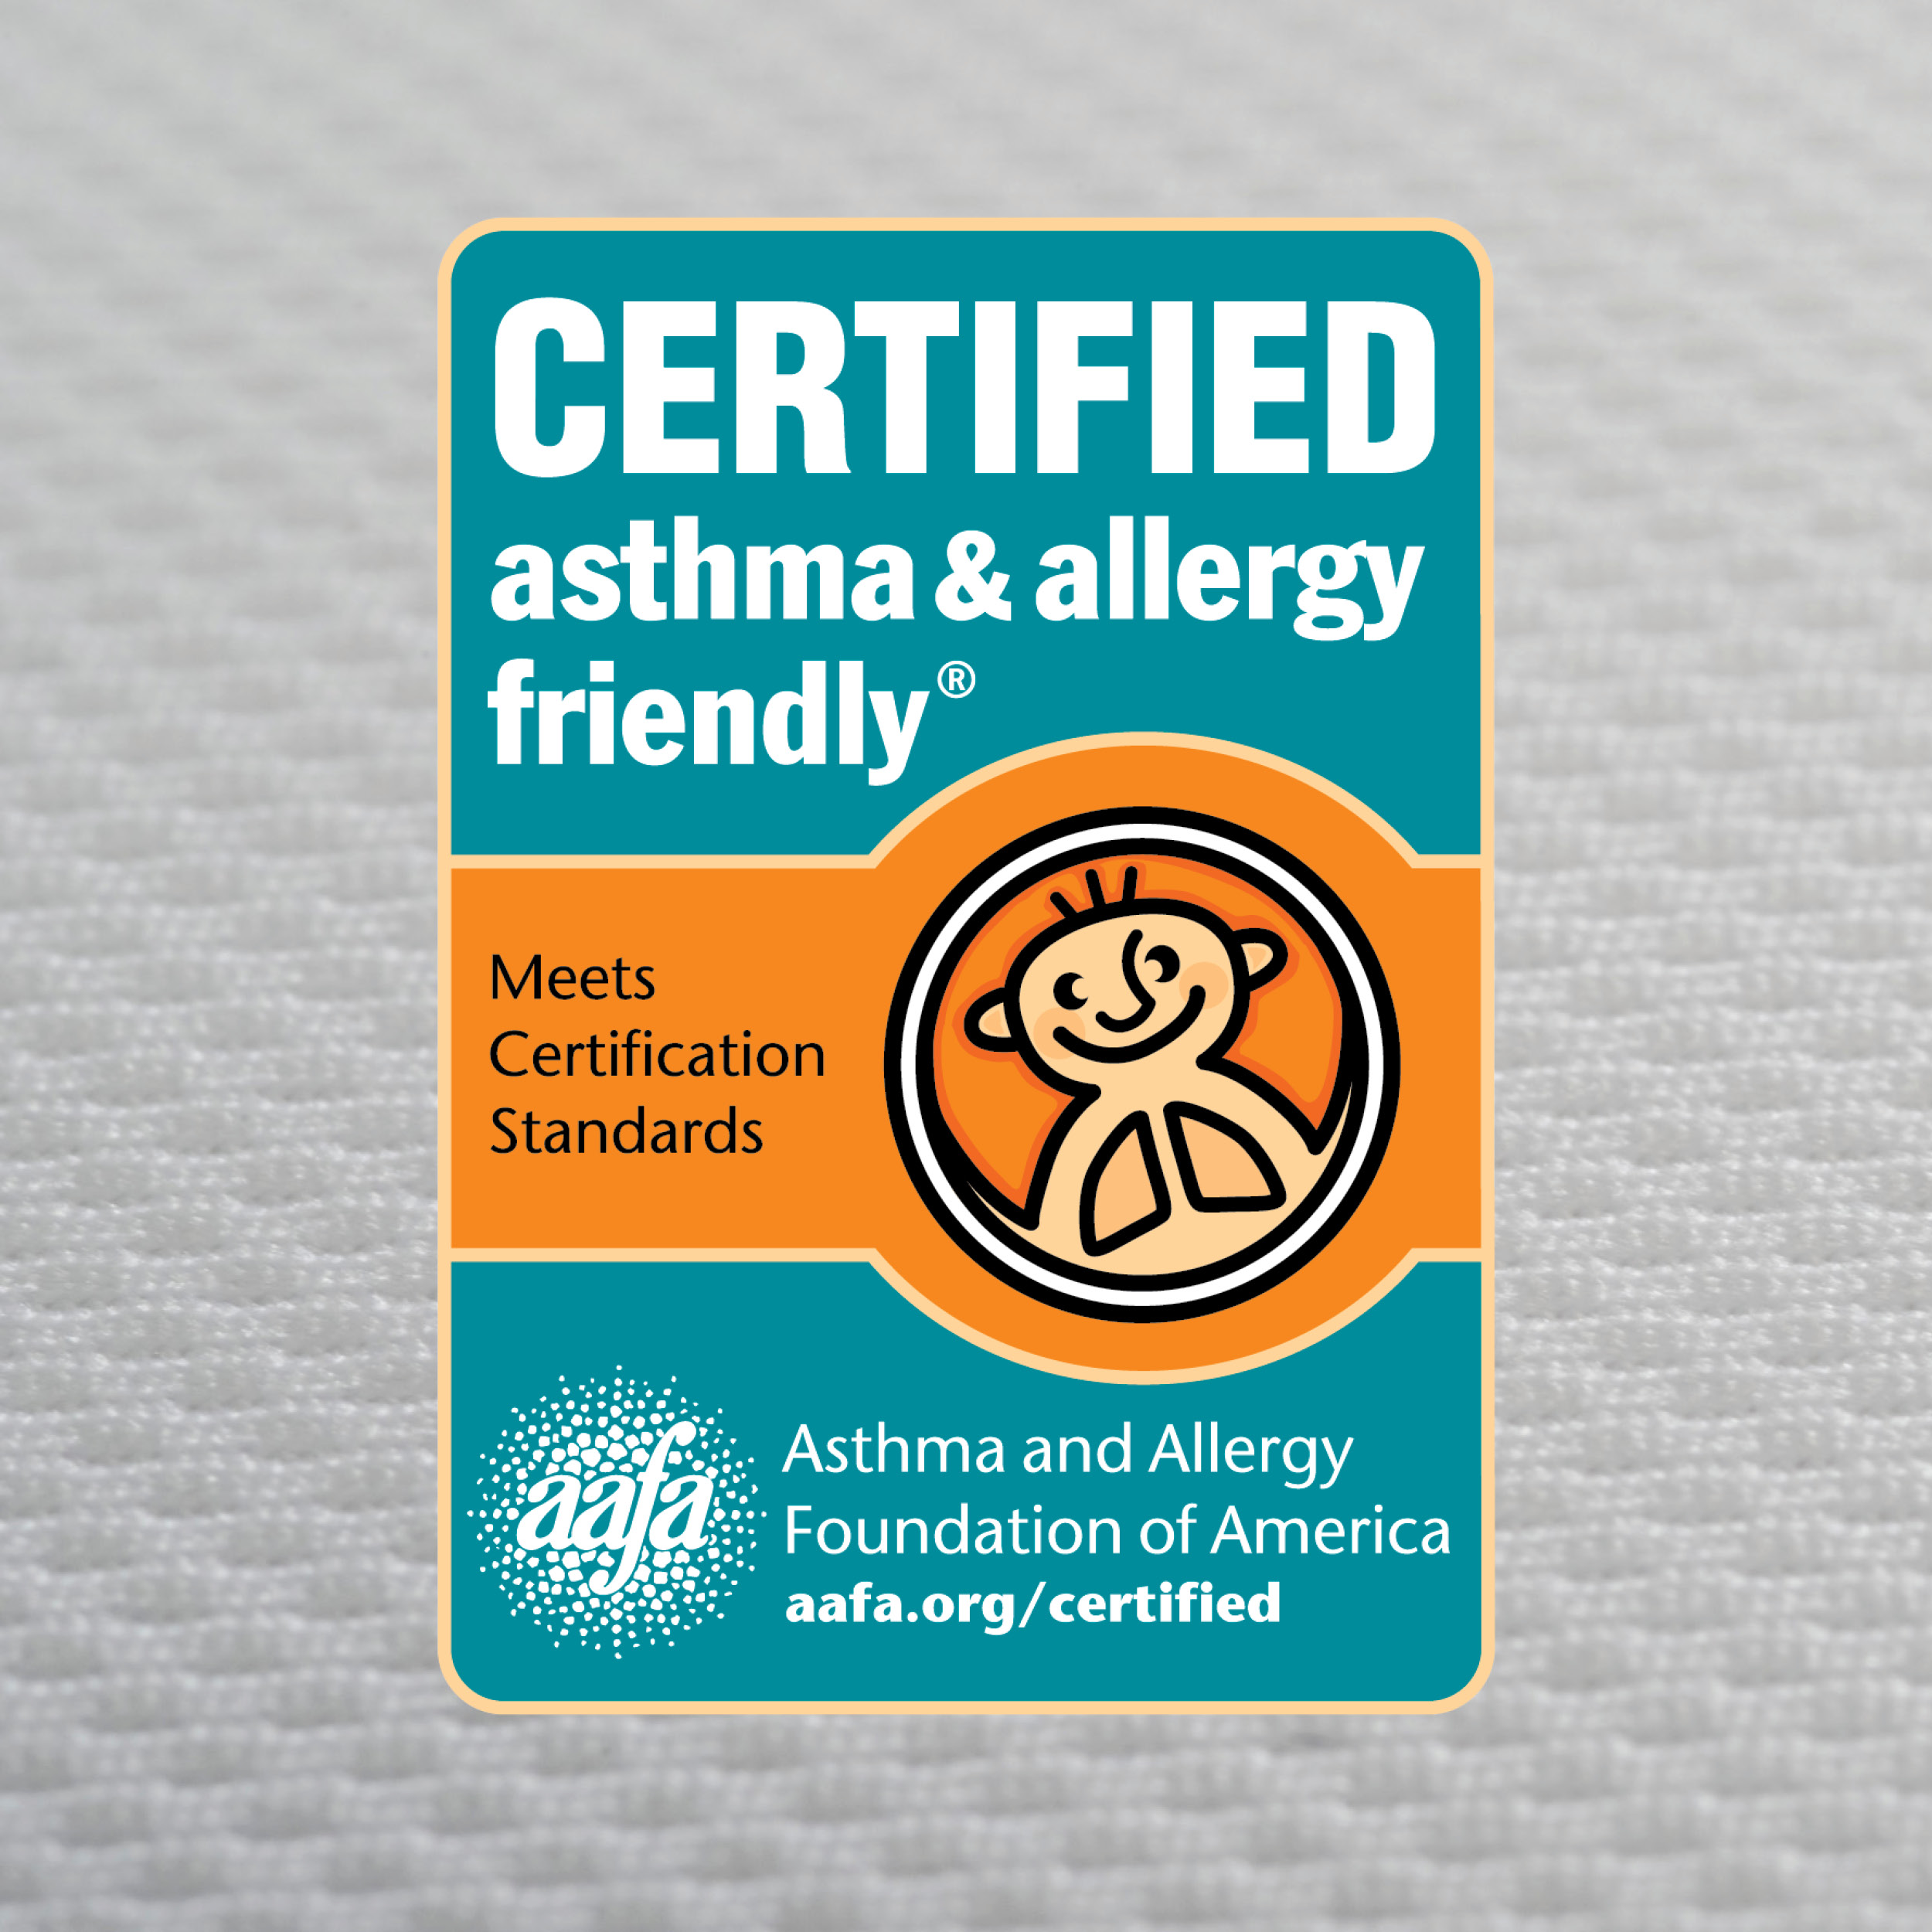 asthma 7 allergy friendly meets certification standards